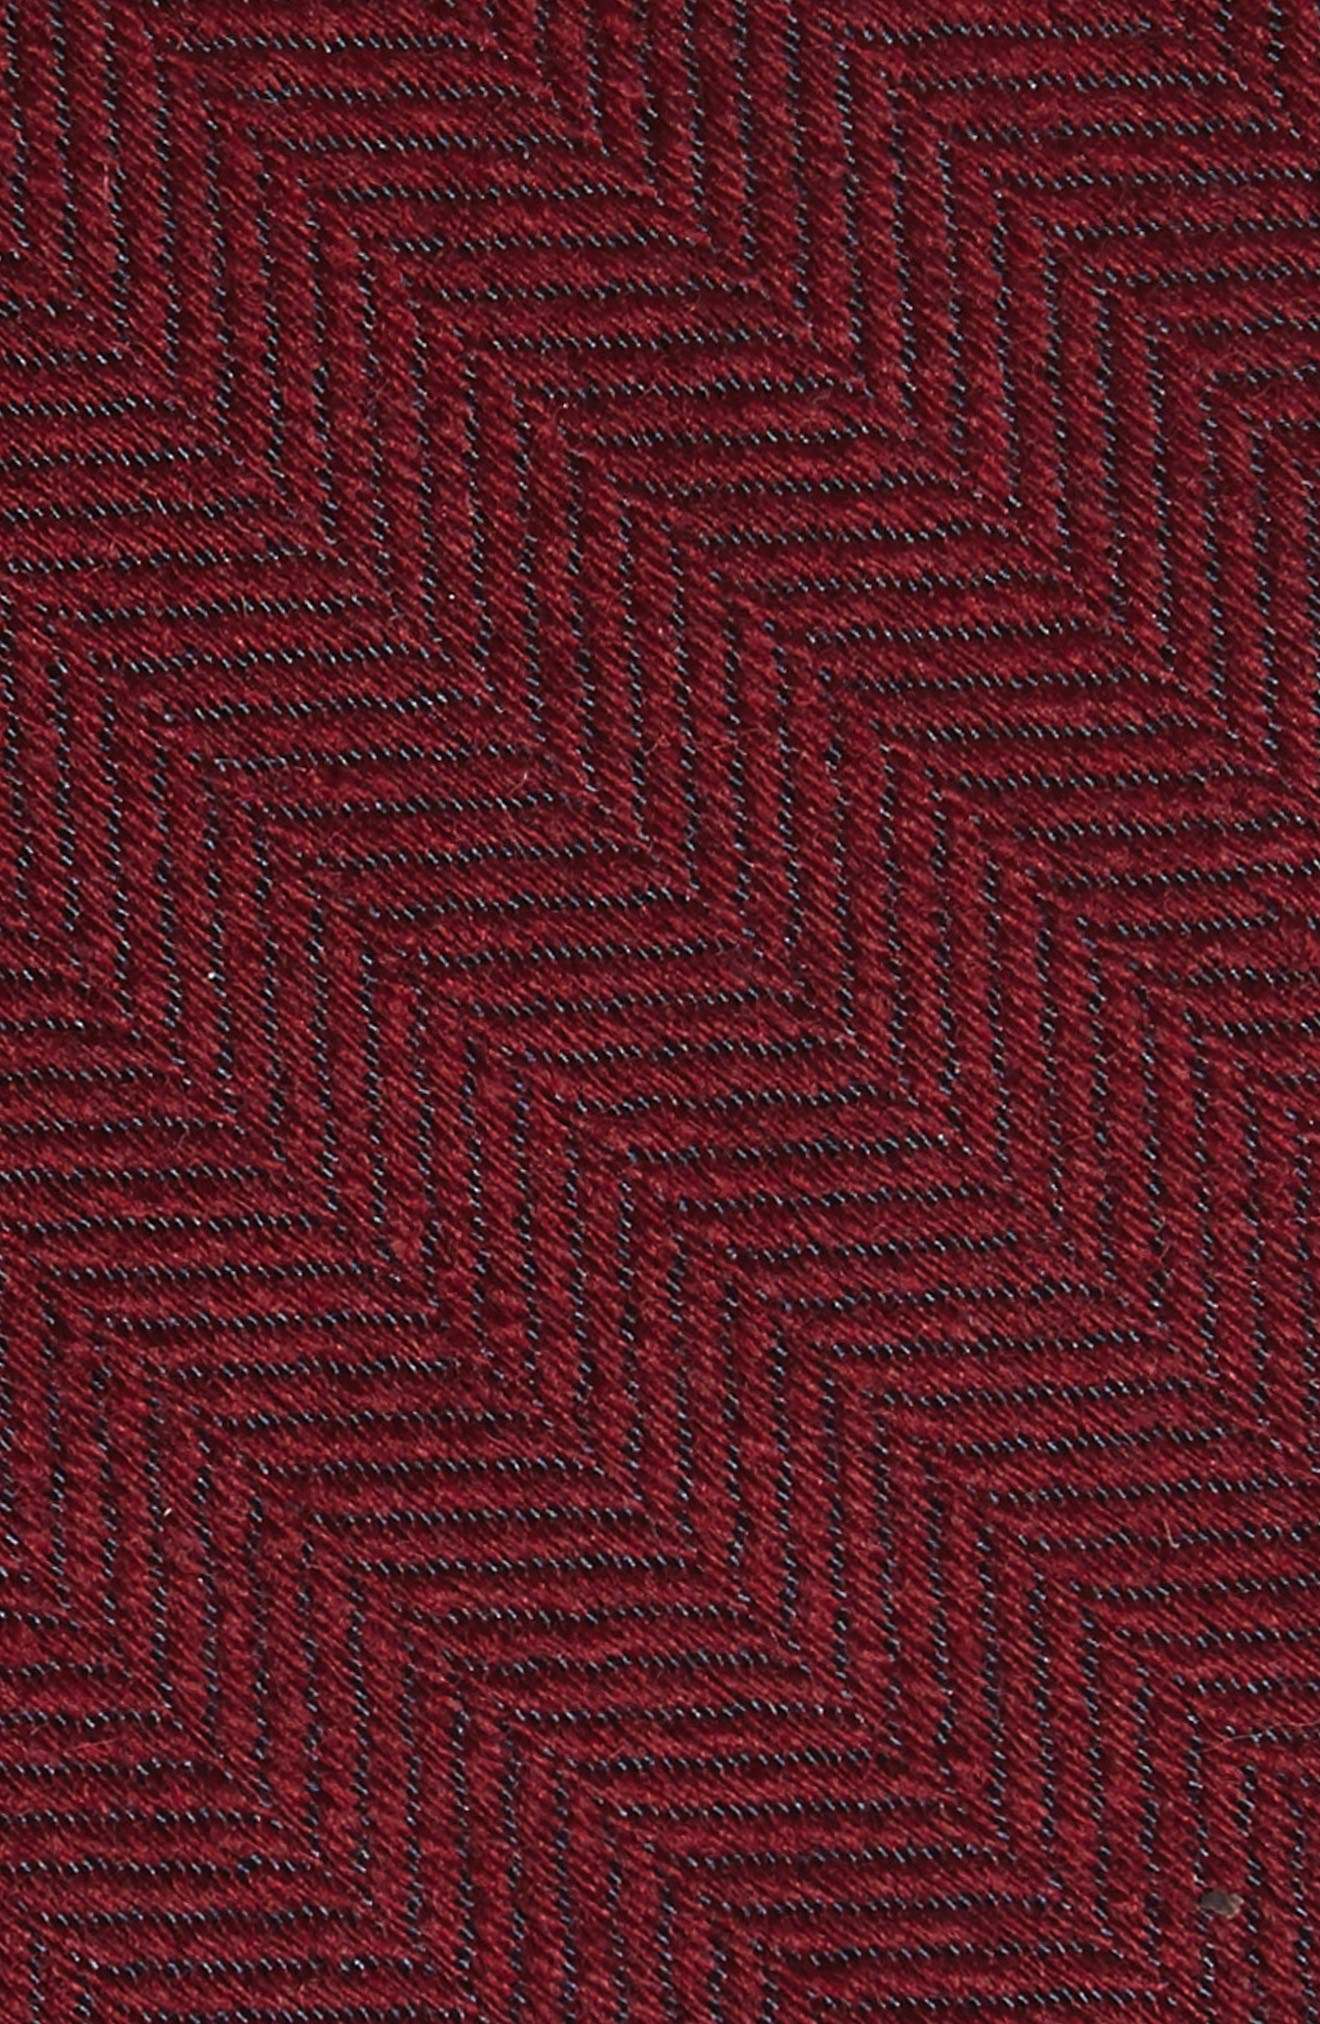 Alternate Image 2  - Michael Bastian Herringbone Wool & Silk Tie